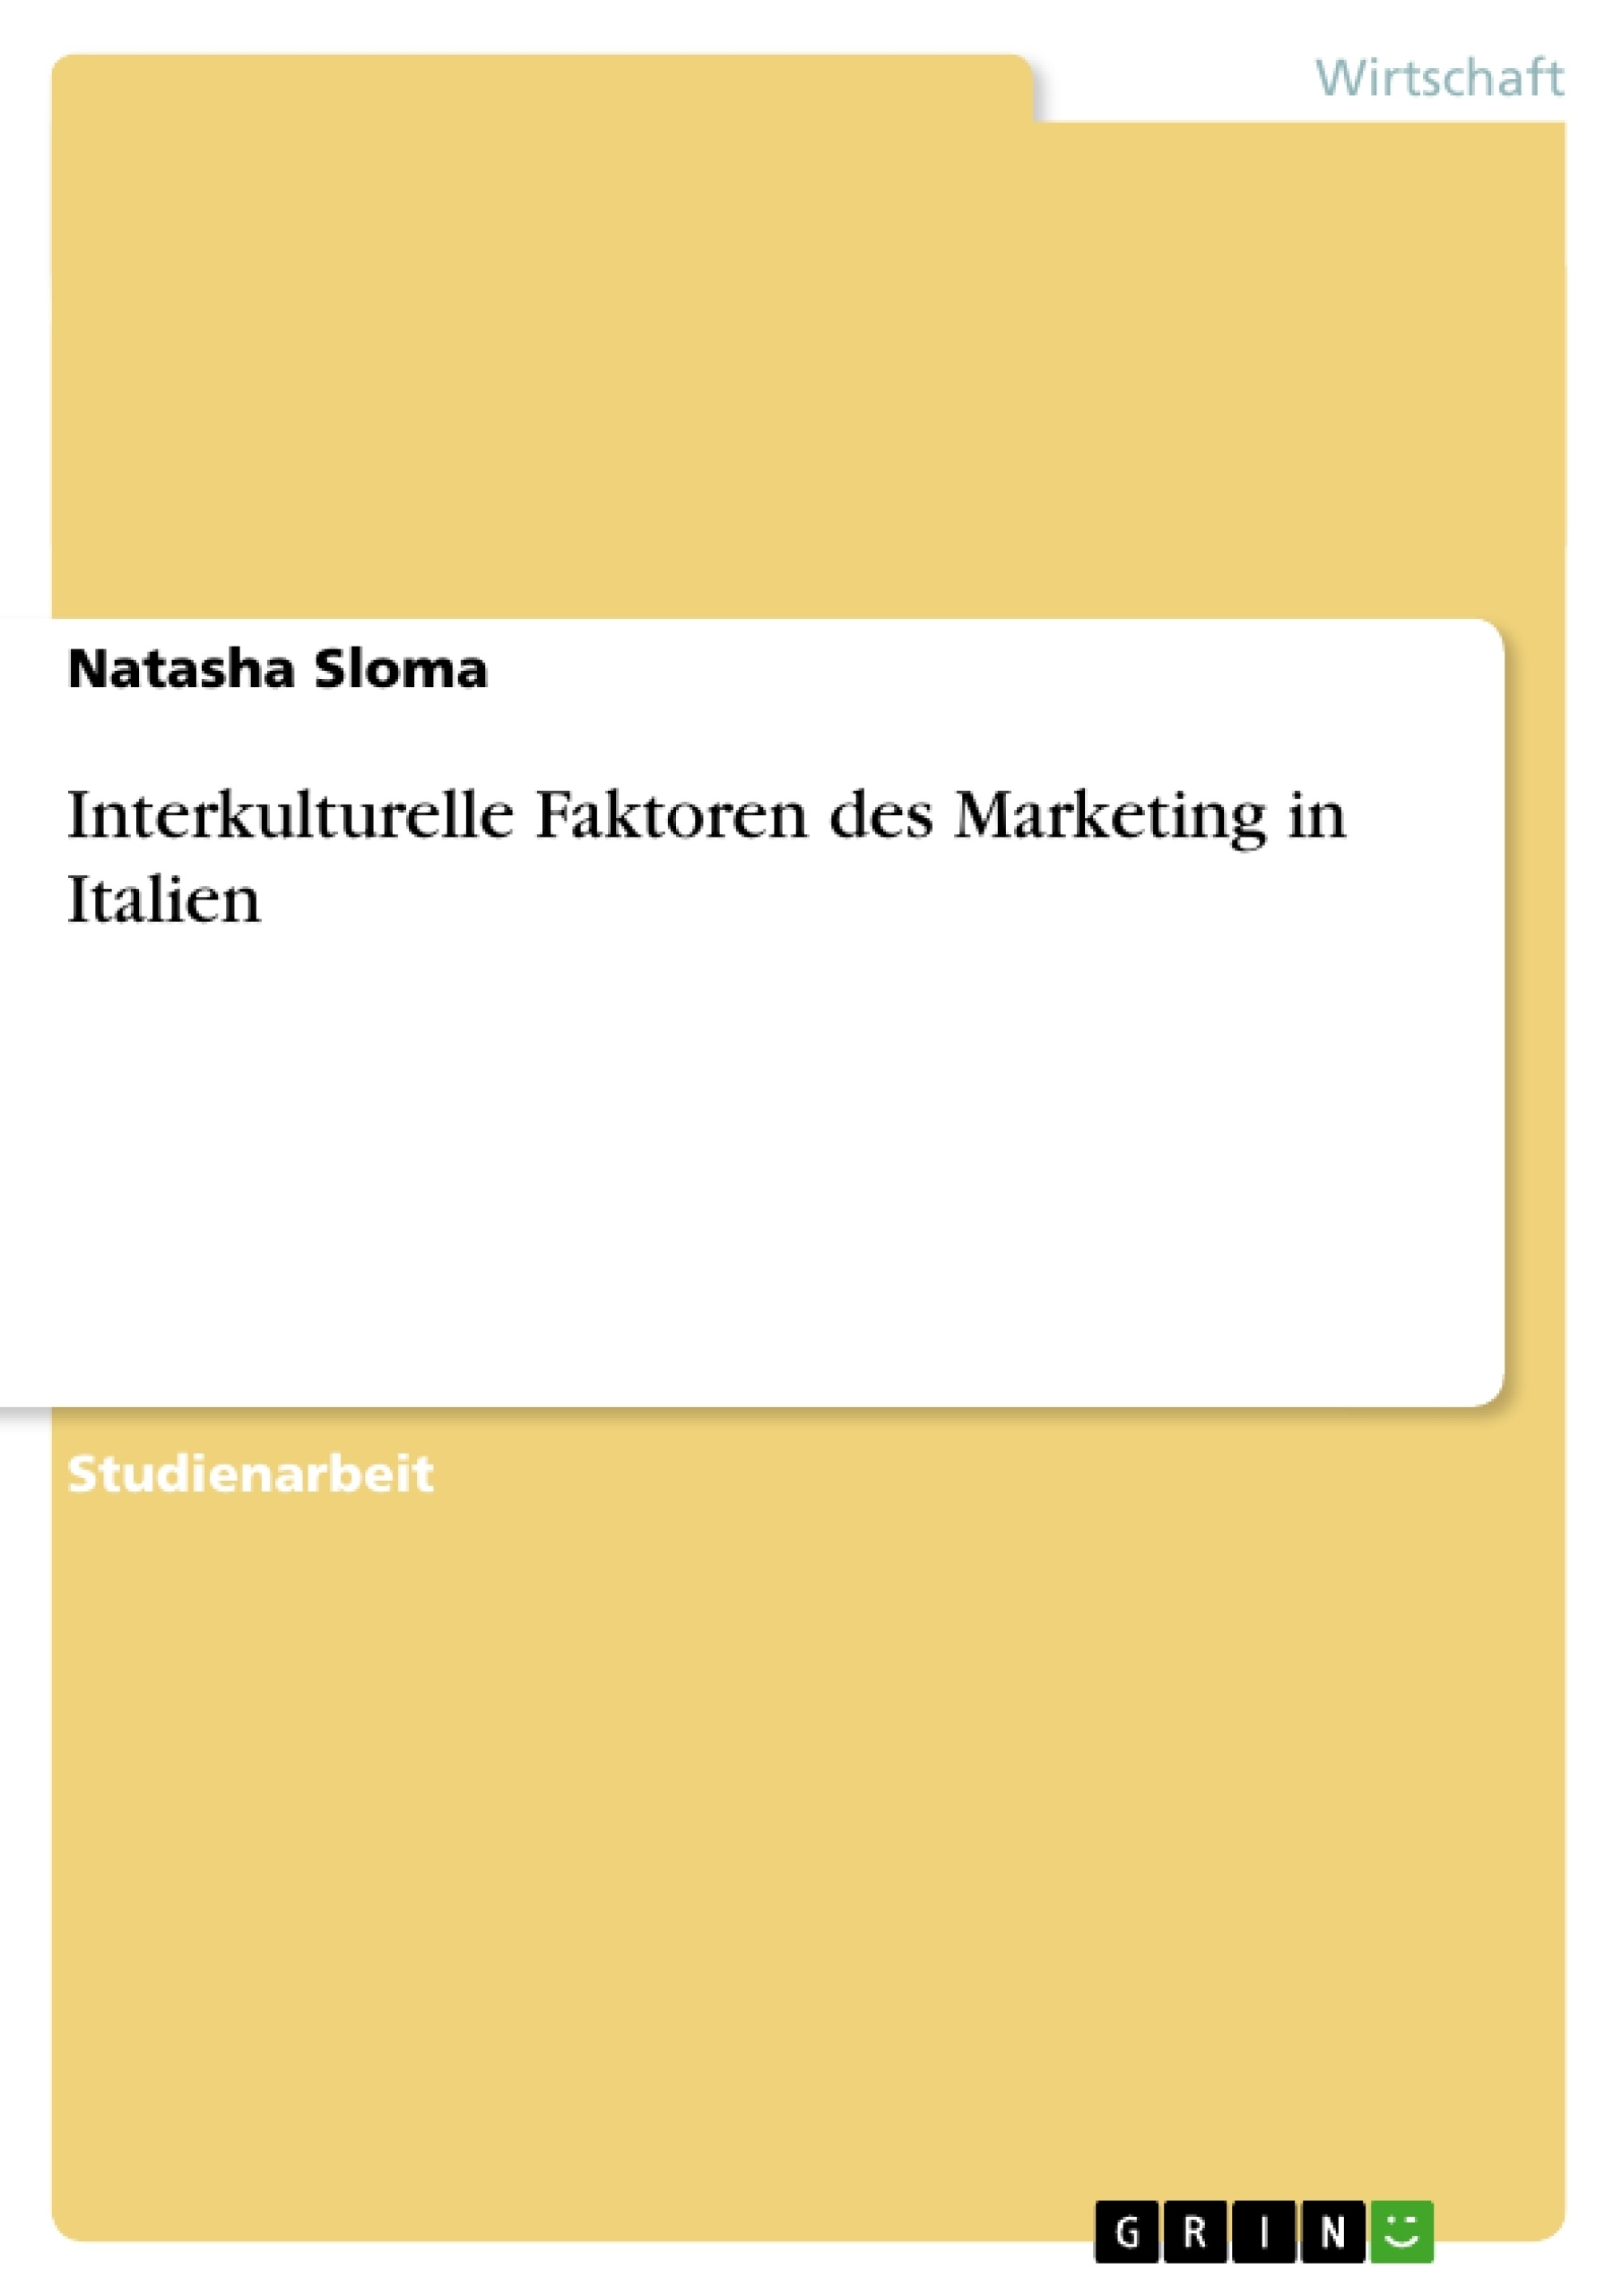 Titel: Interkulturelle Faktoren des Marketing in Italien